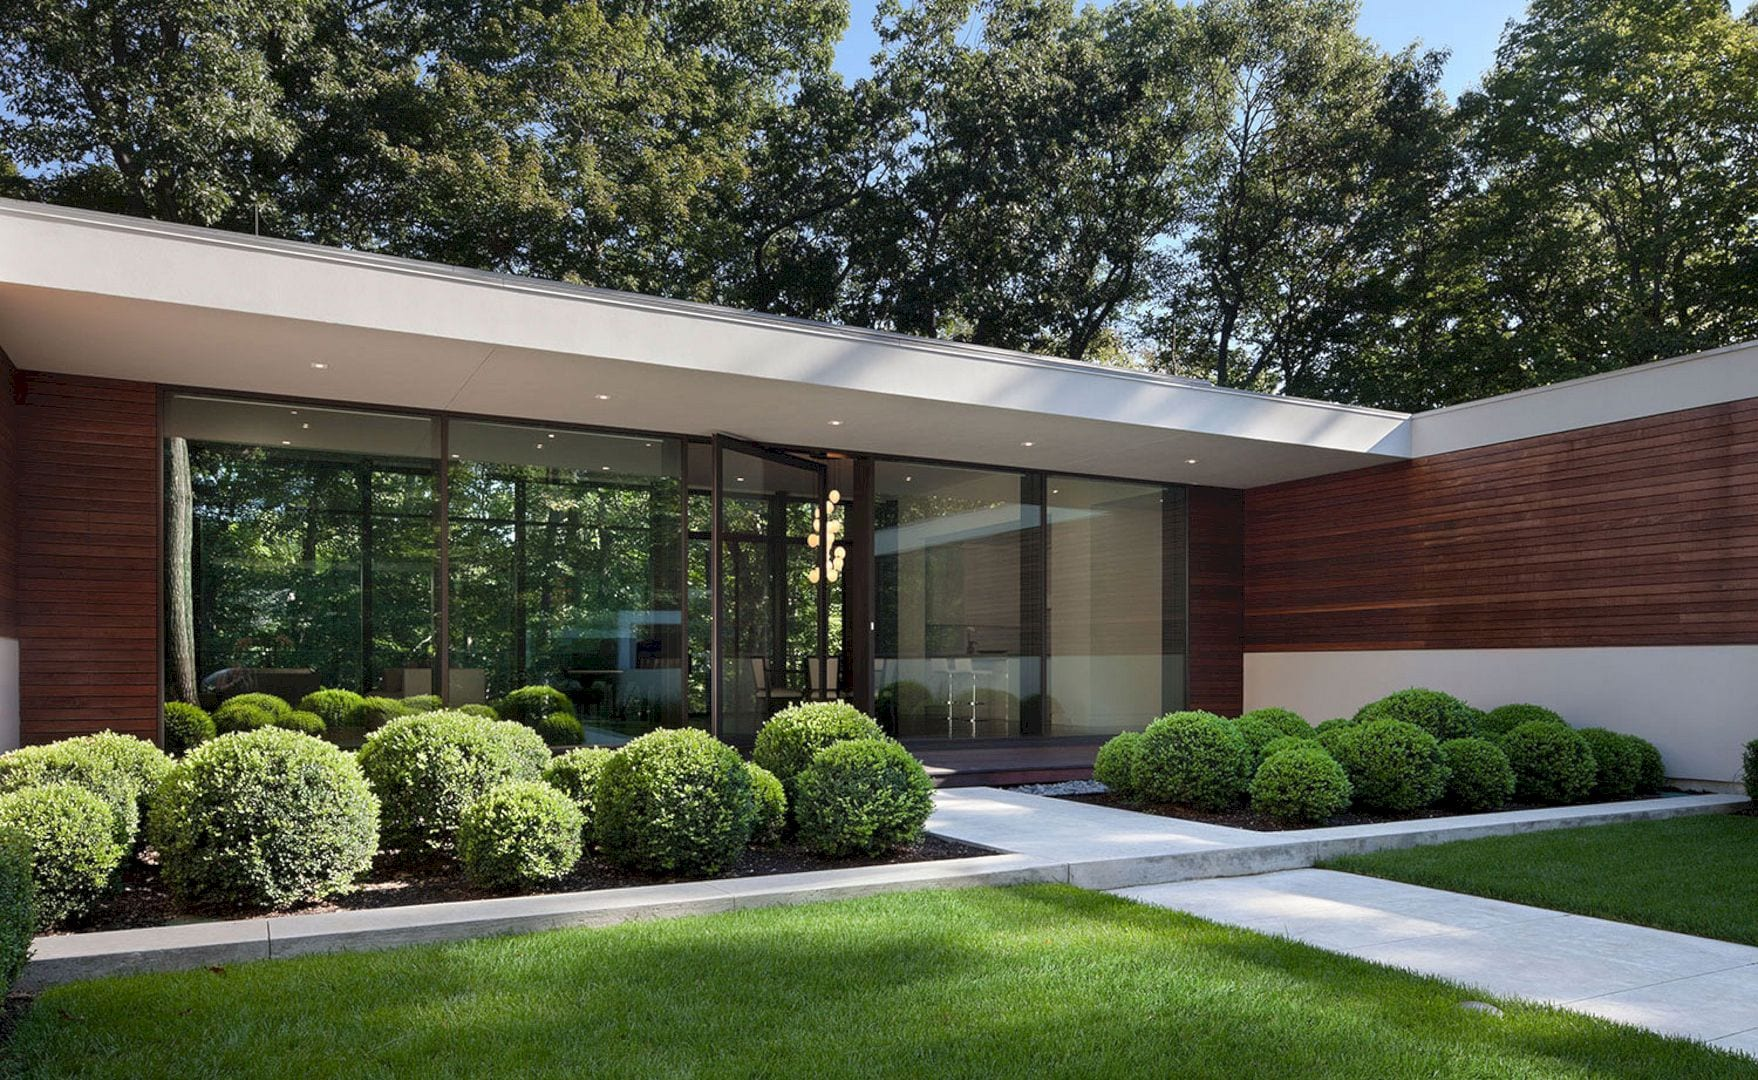 New Canaan Residence By Specht Architects 15